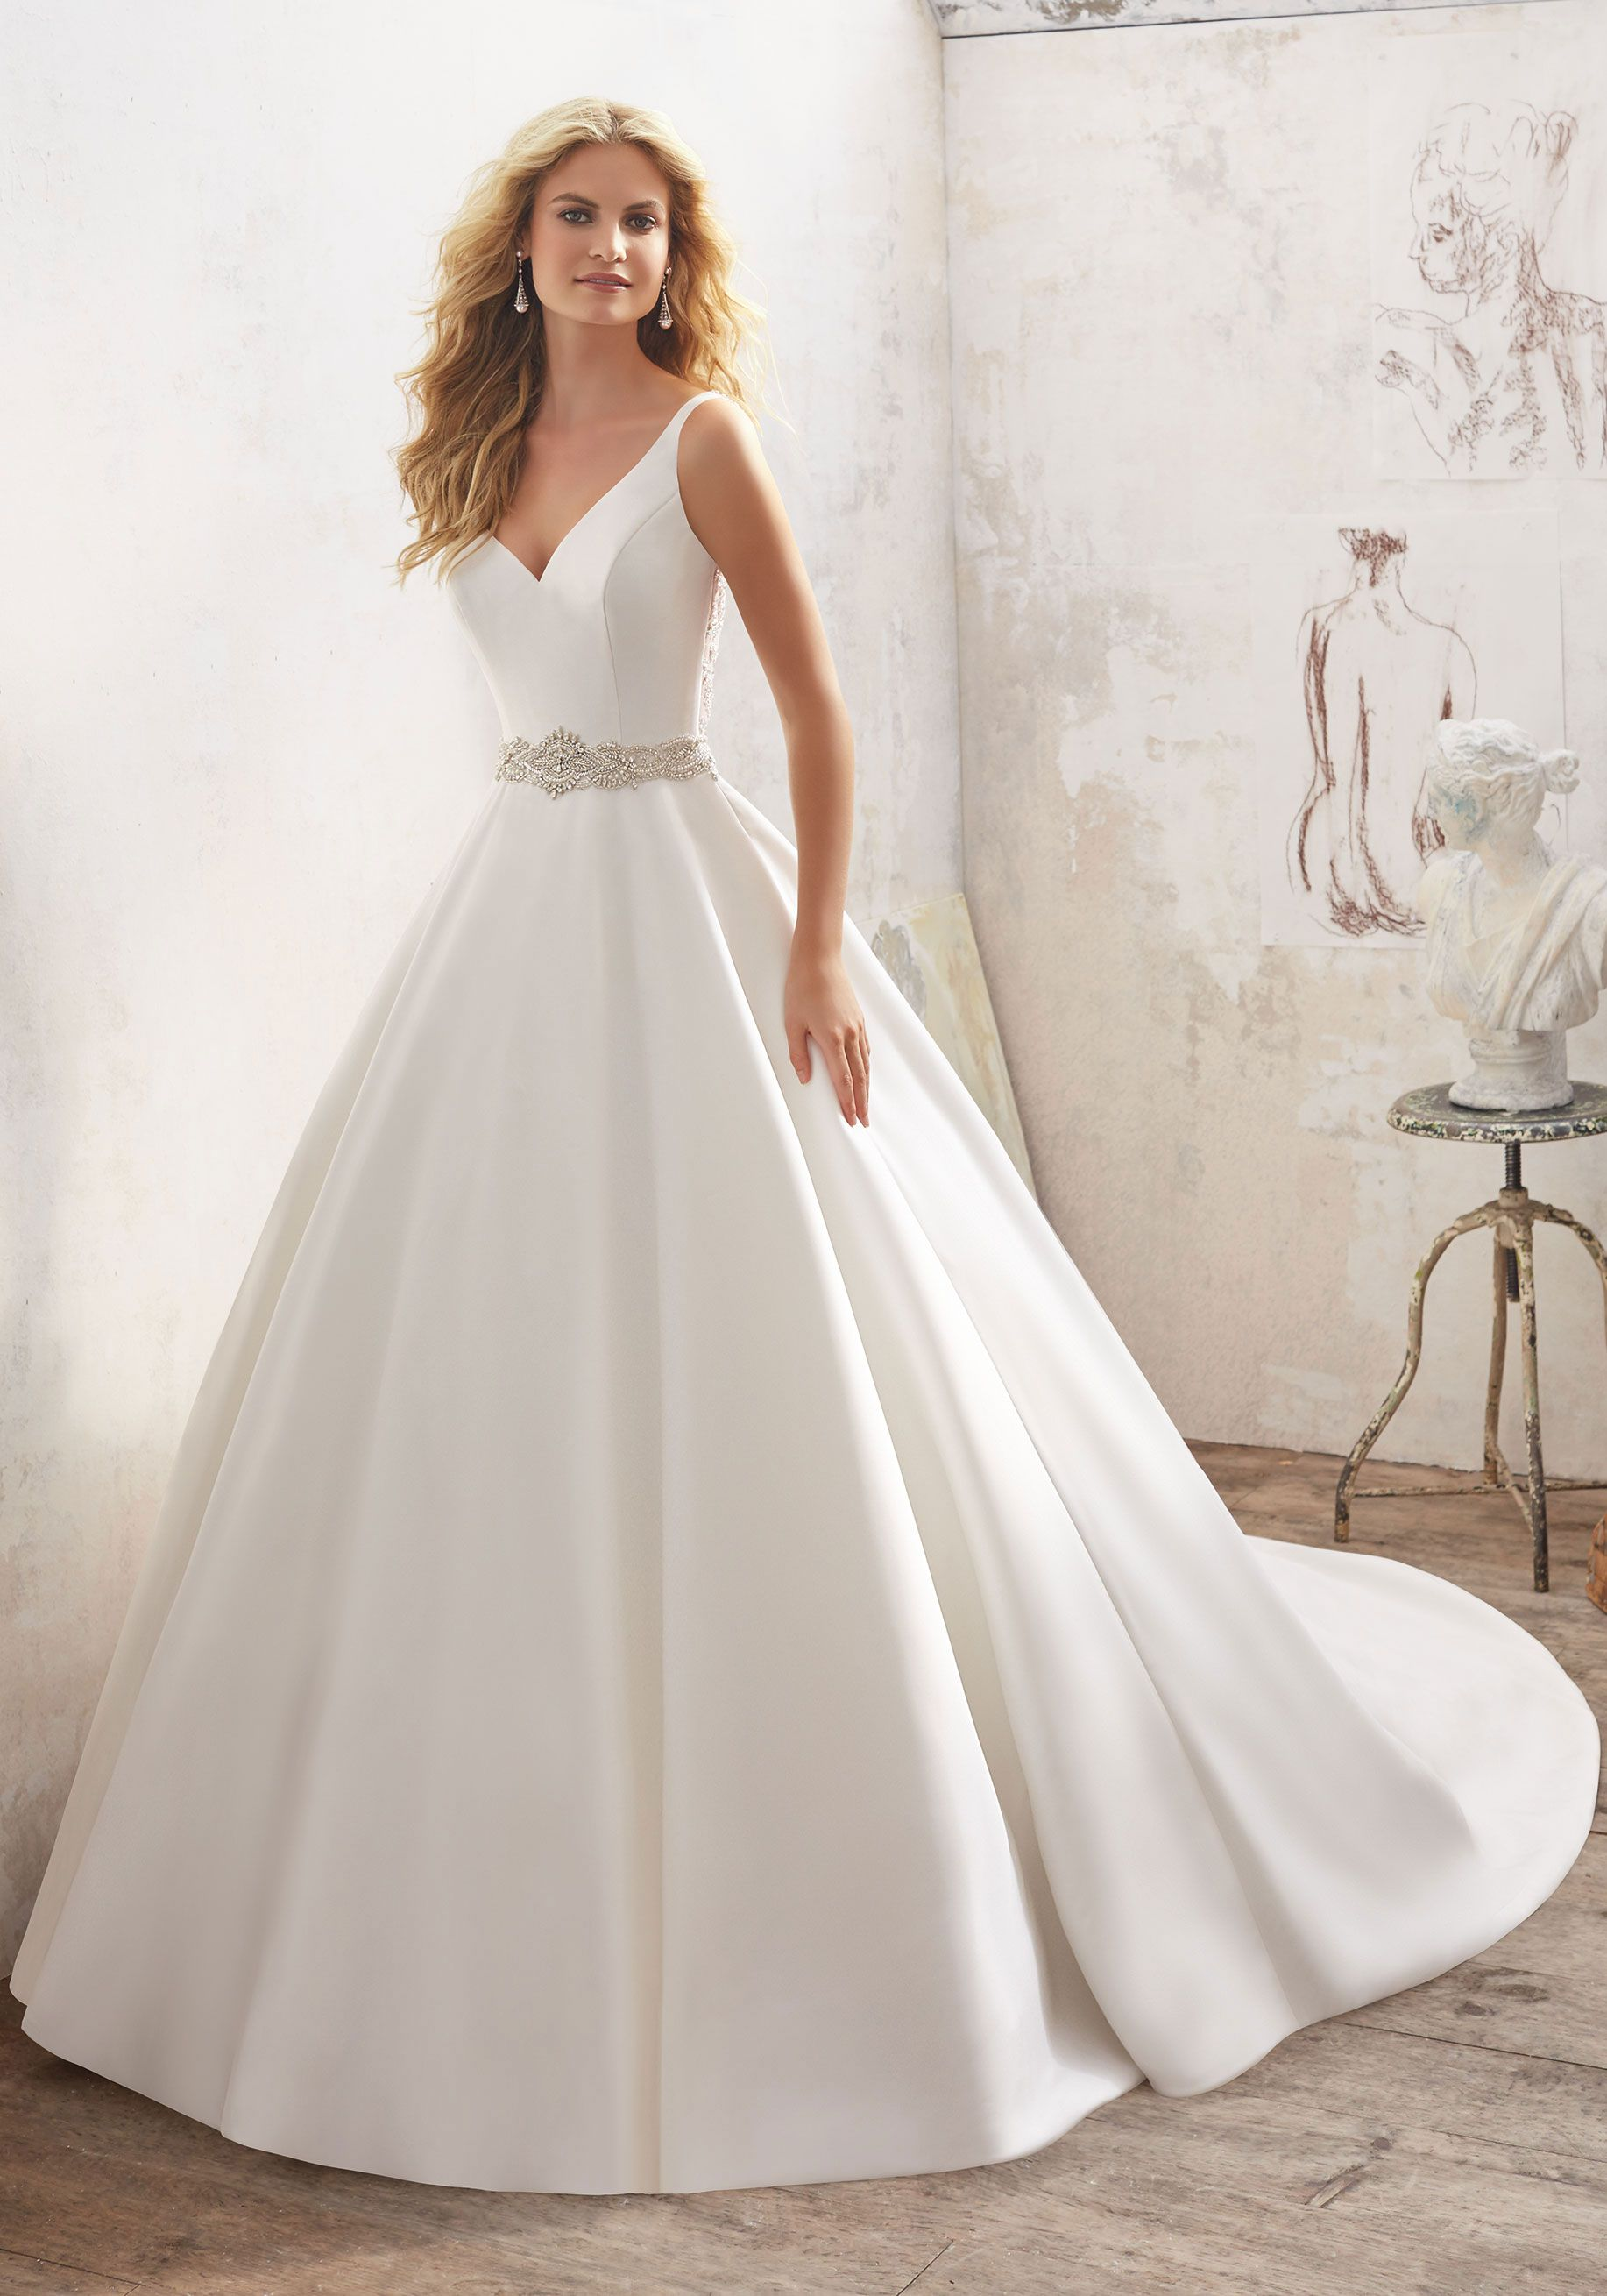 Morilee by Madeline \'Maribella\' Gardner 8123 | Understated and ...